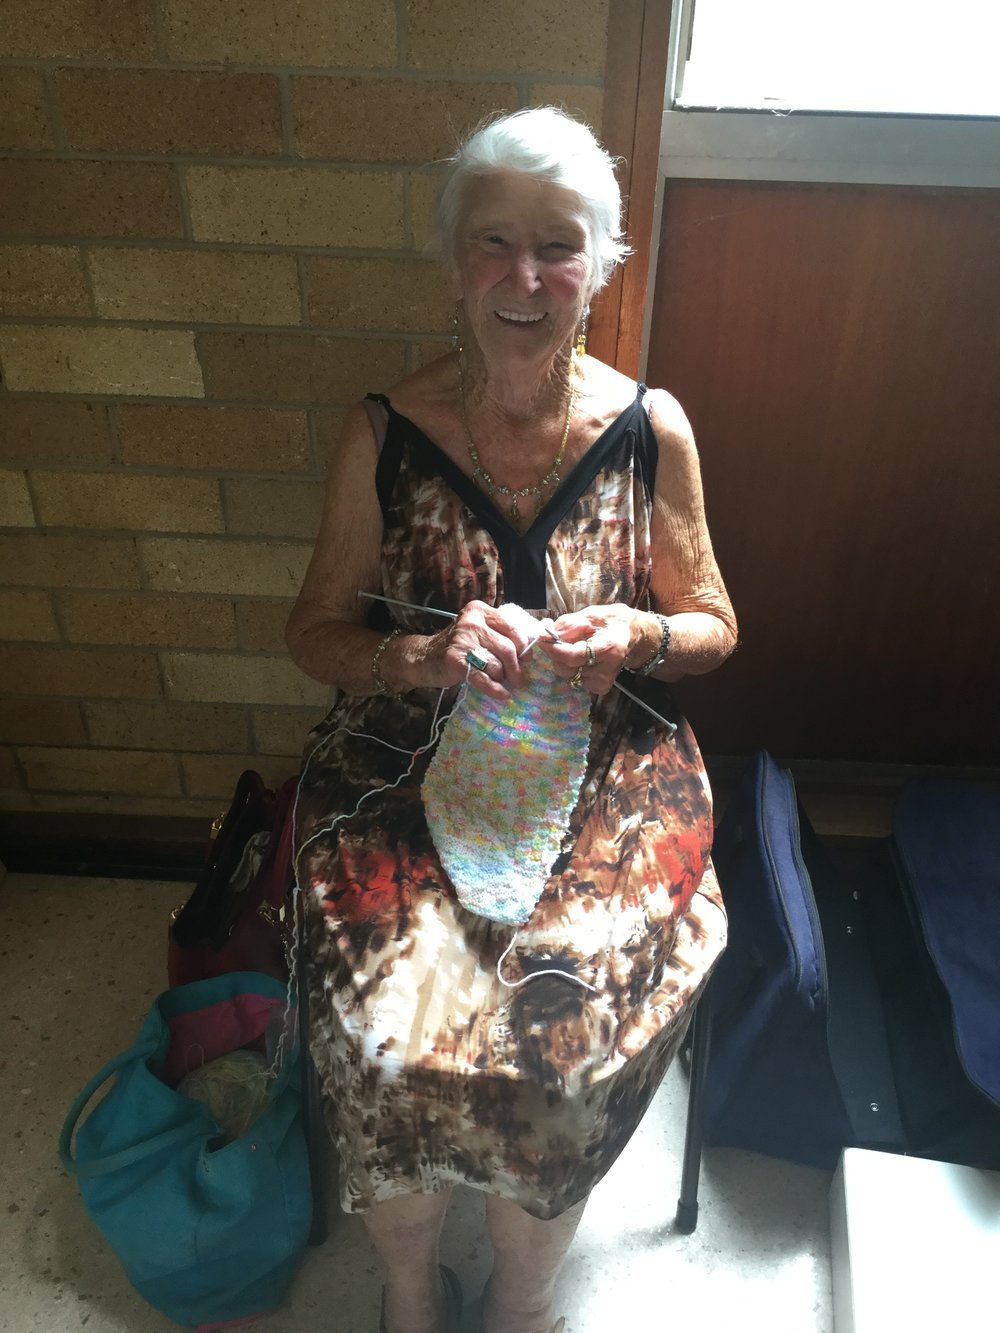 Our very own Knitting Nanna